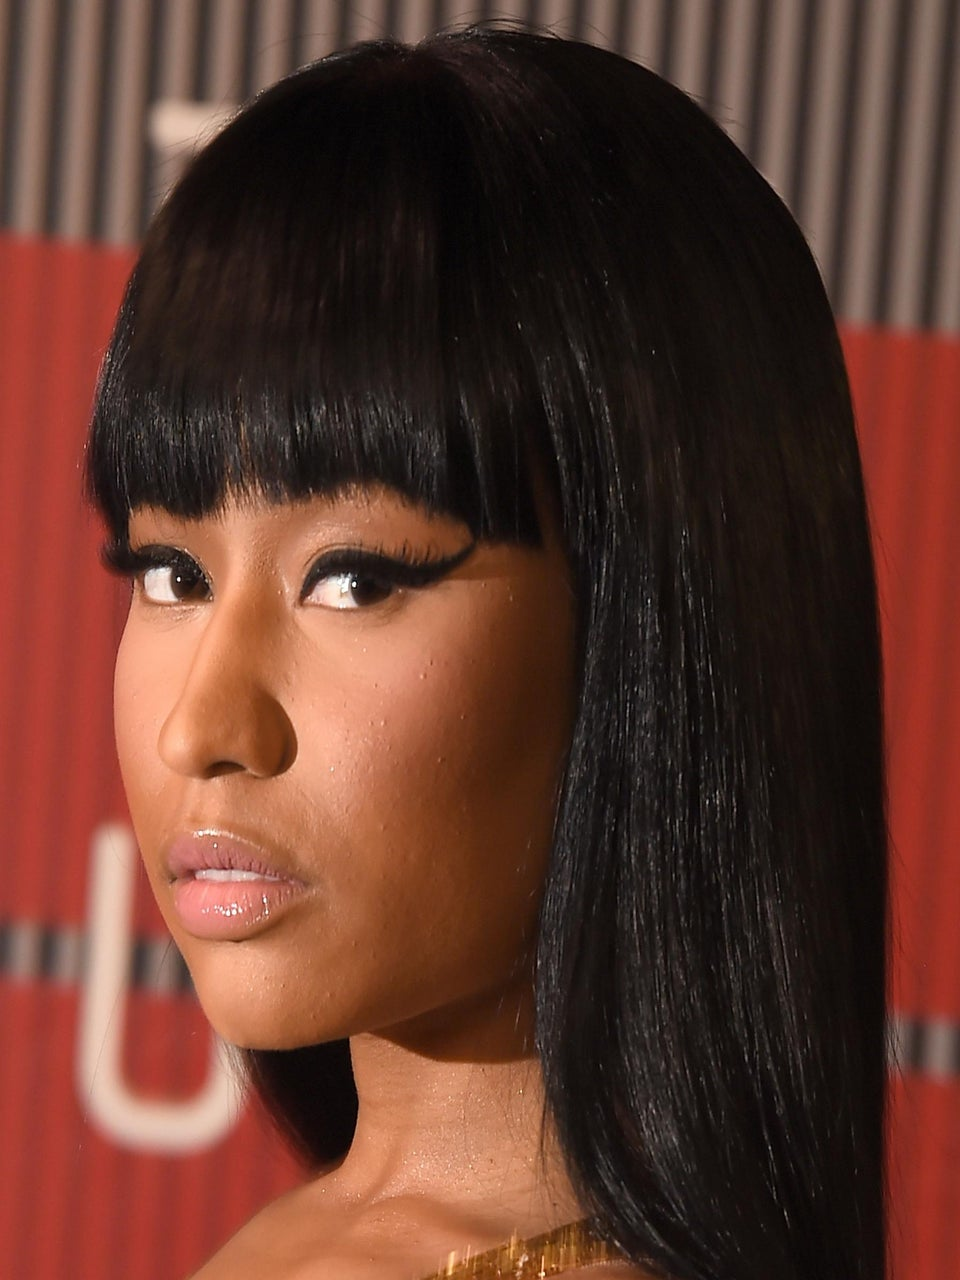 Nicki Minaj Explains Why She Is Unapologetic About Calling Out Miley Cyrus at VMAs